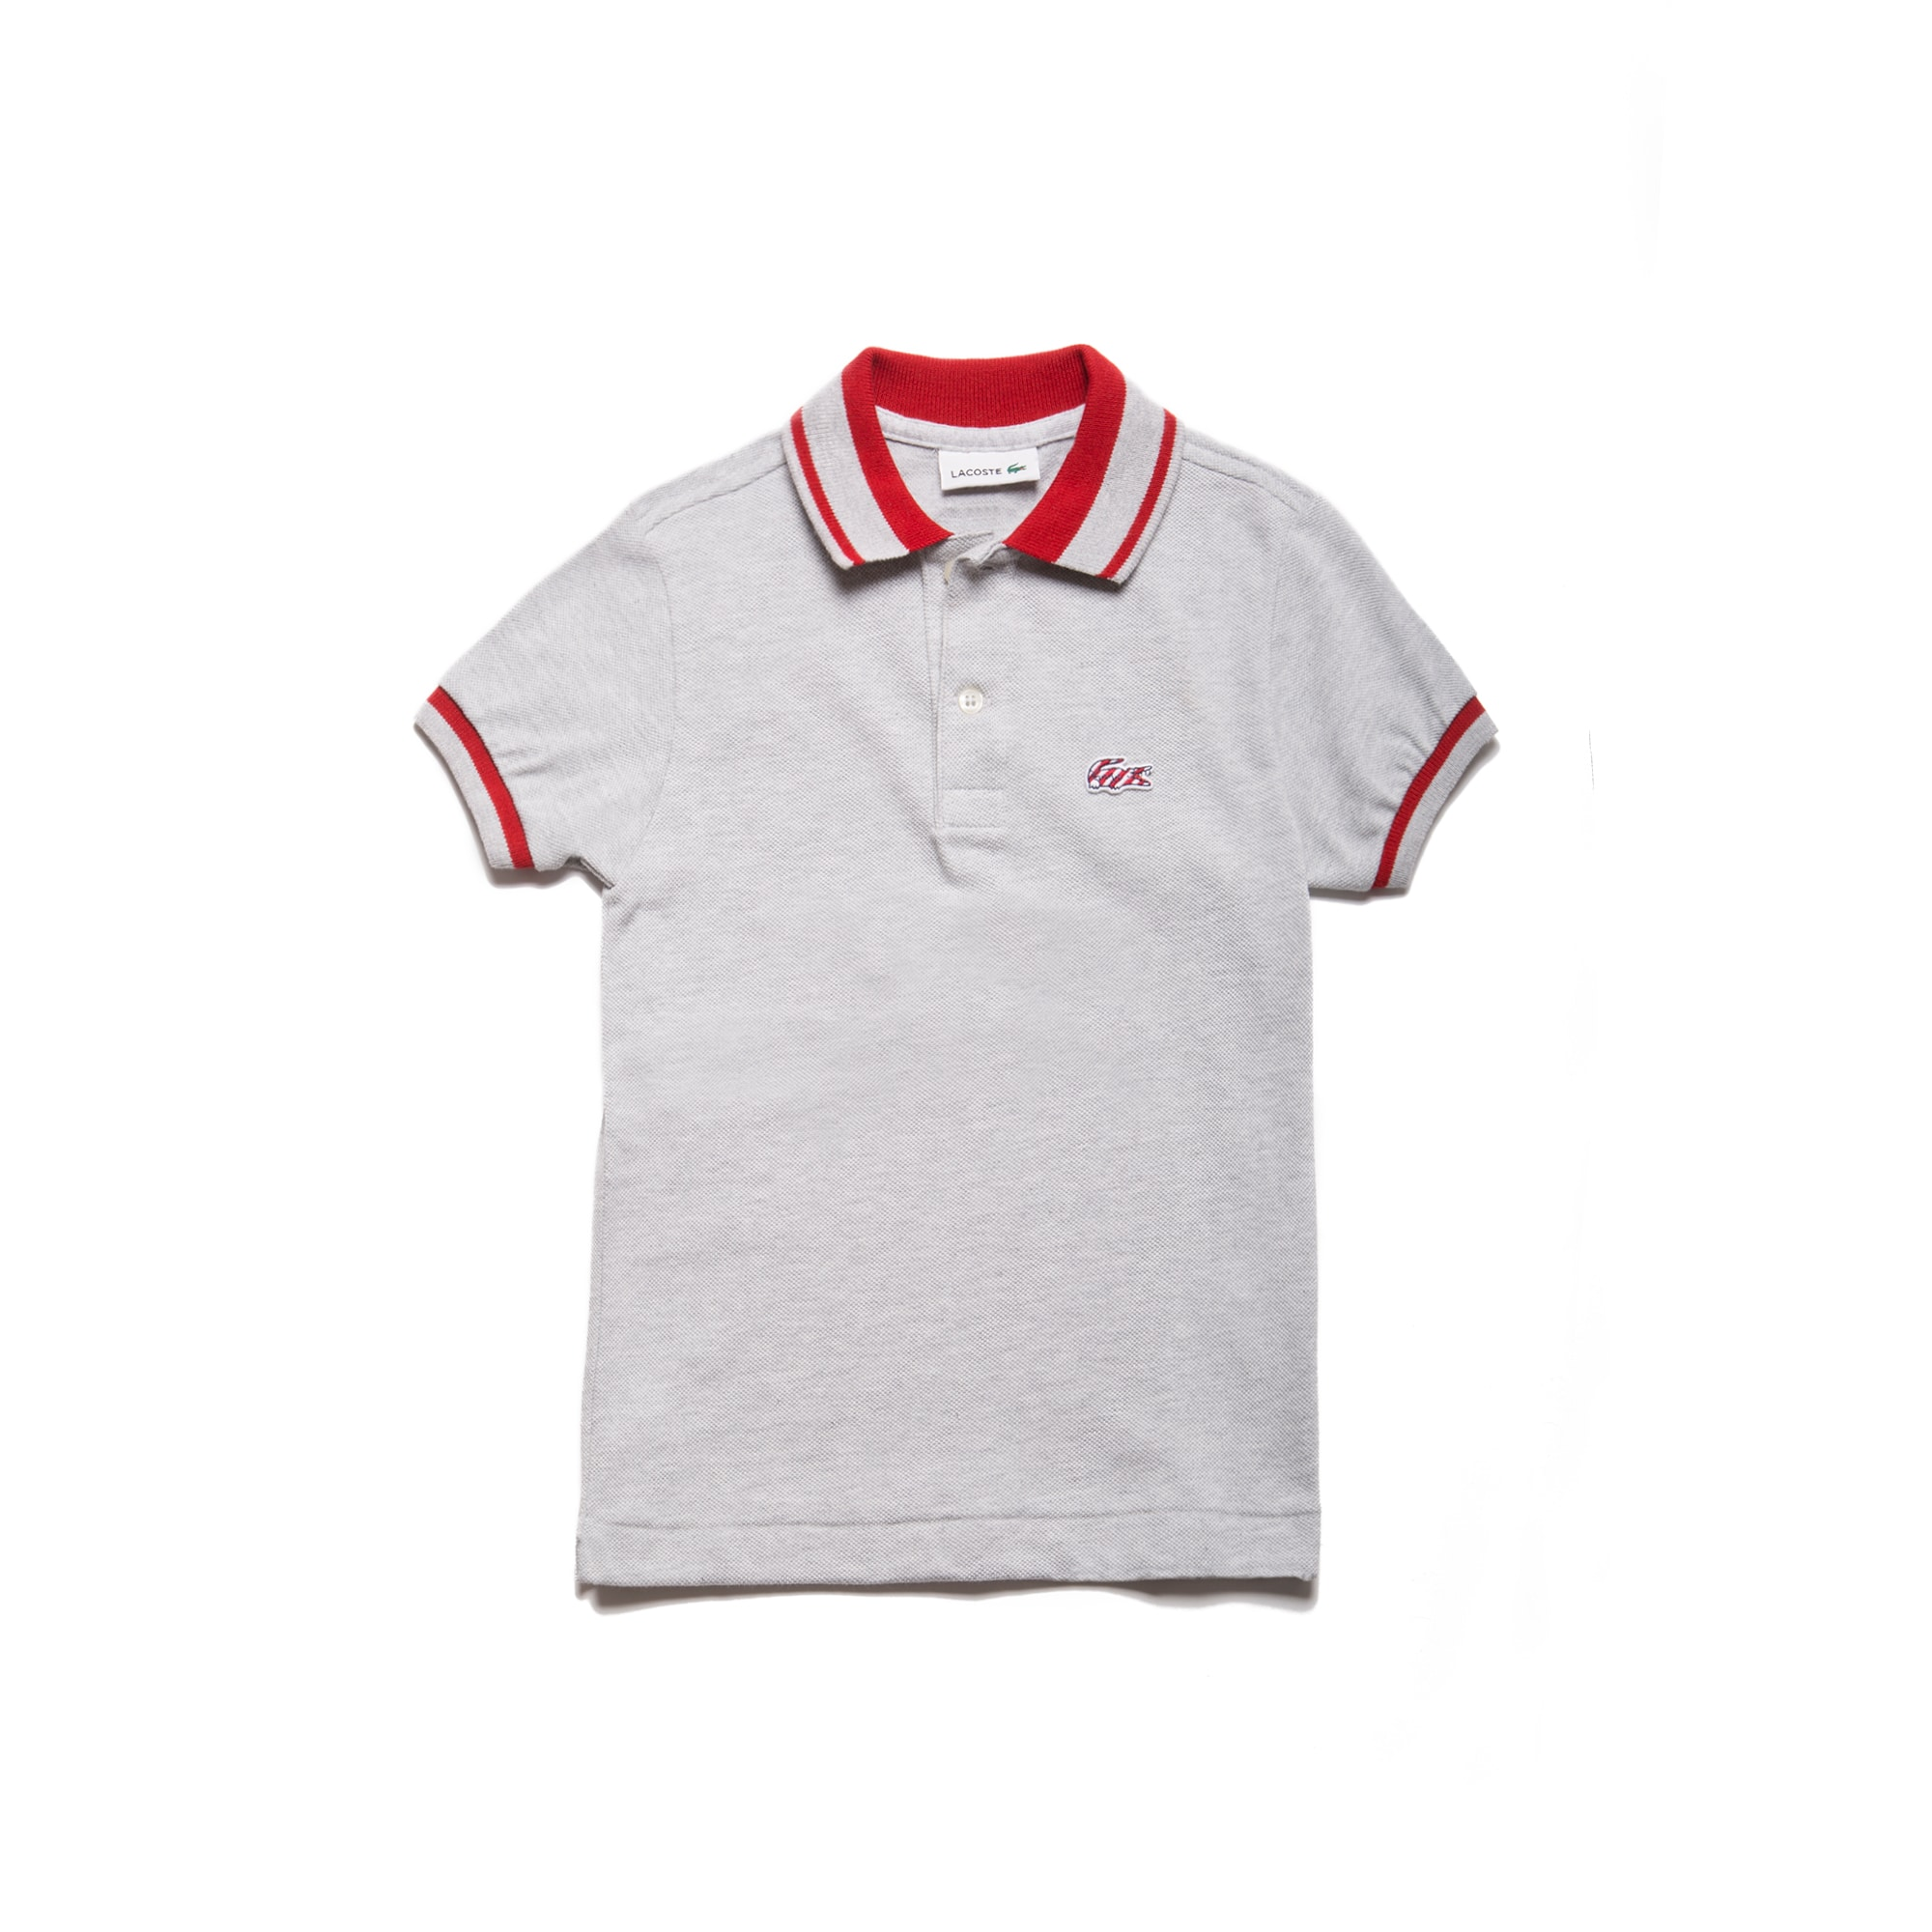 Boy's Candy Striped Cotton Polo Shirt